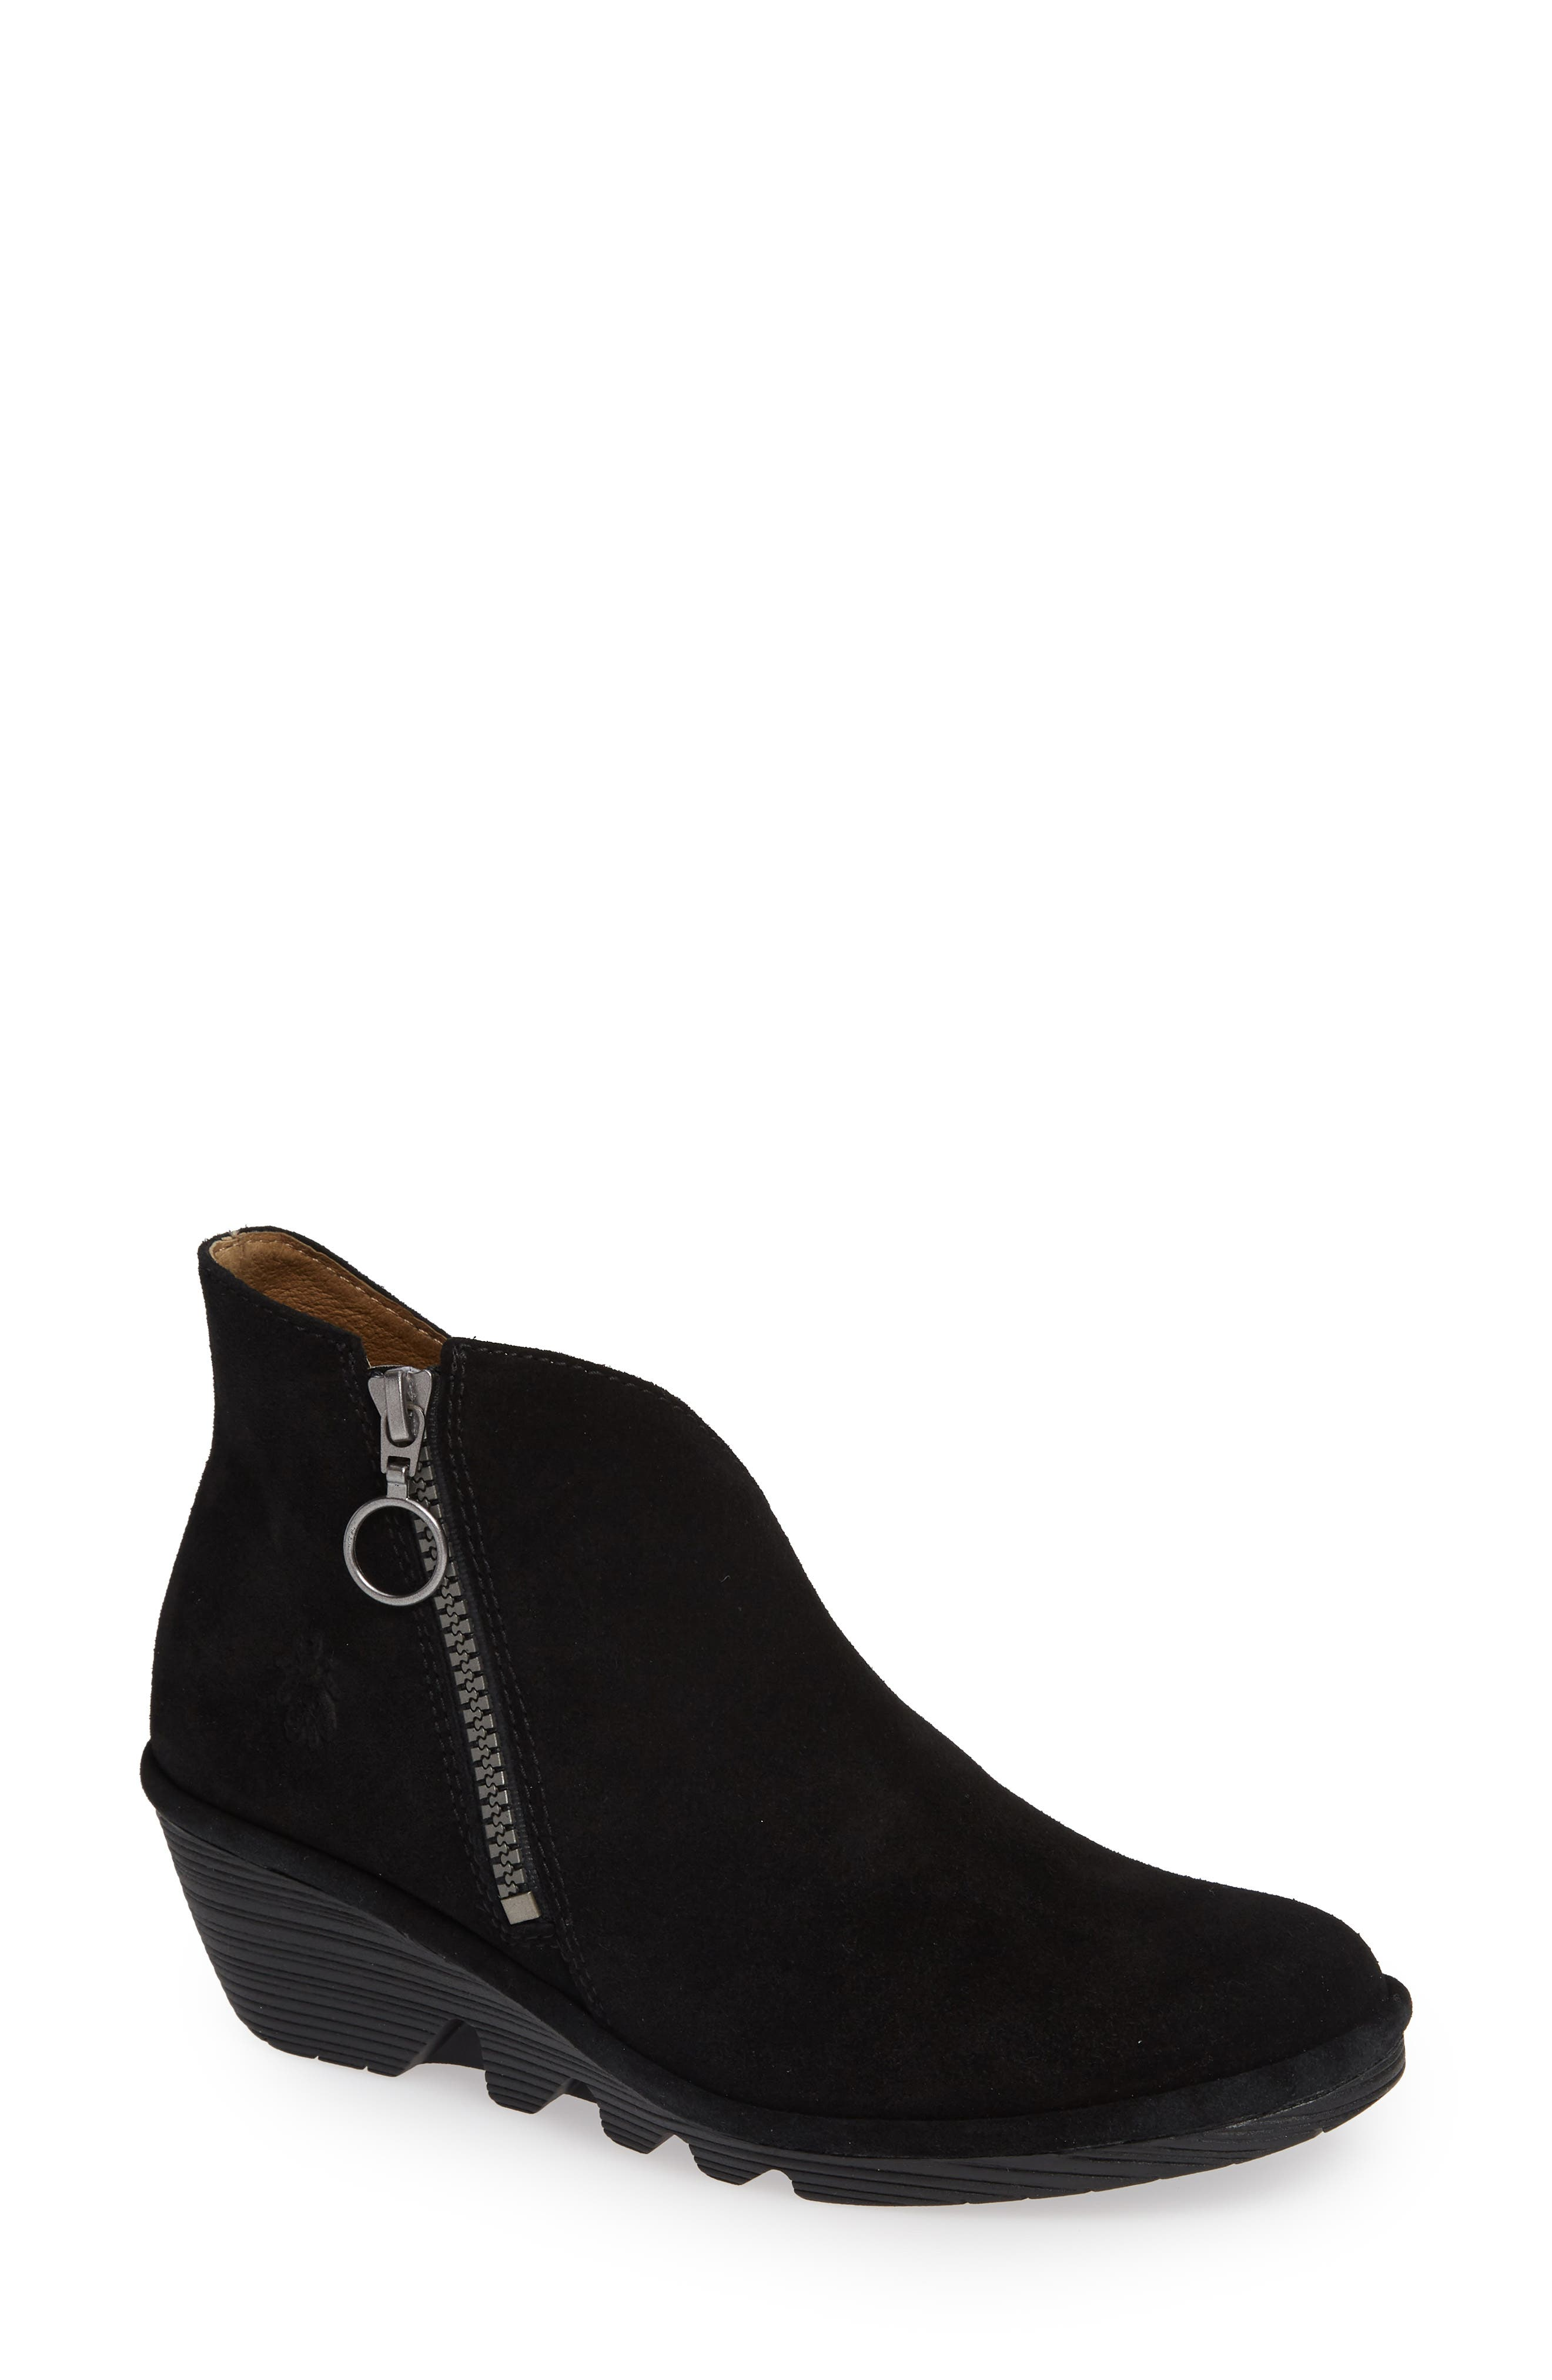 Fly London Poro Wedge Bootie - Black